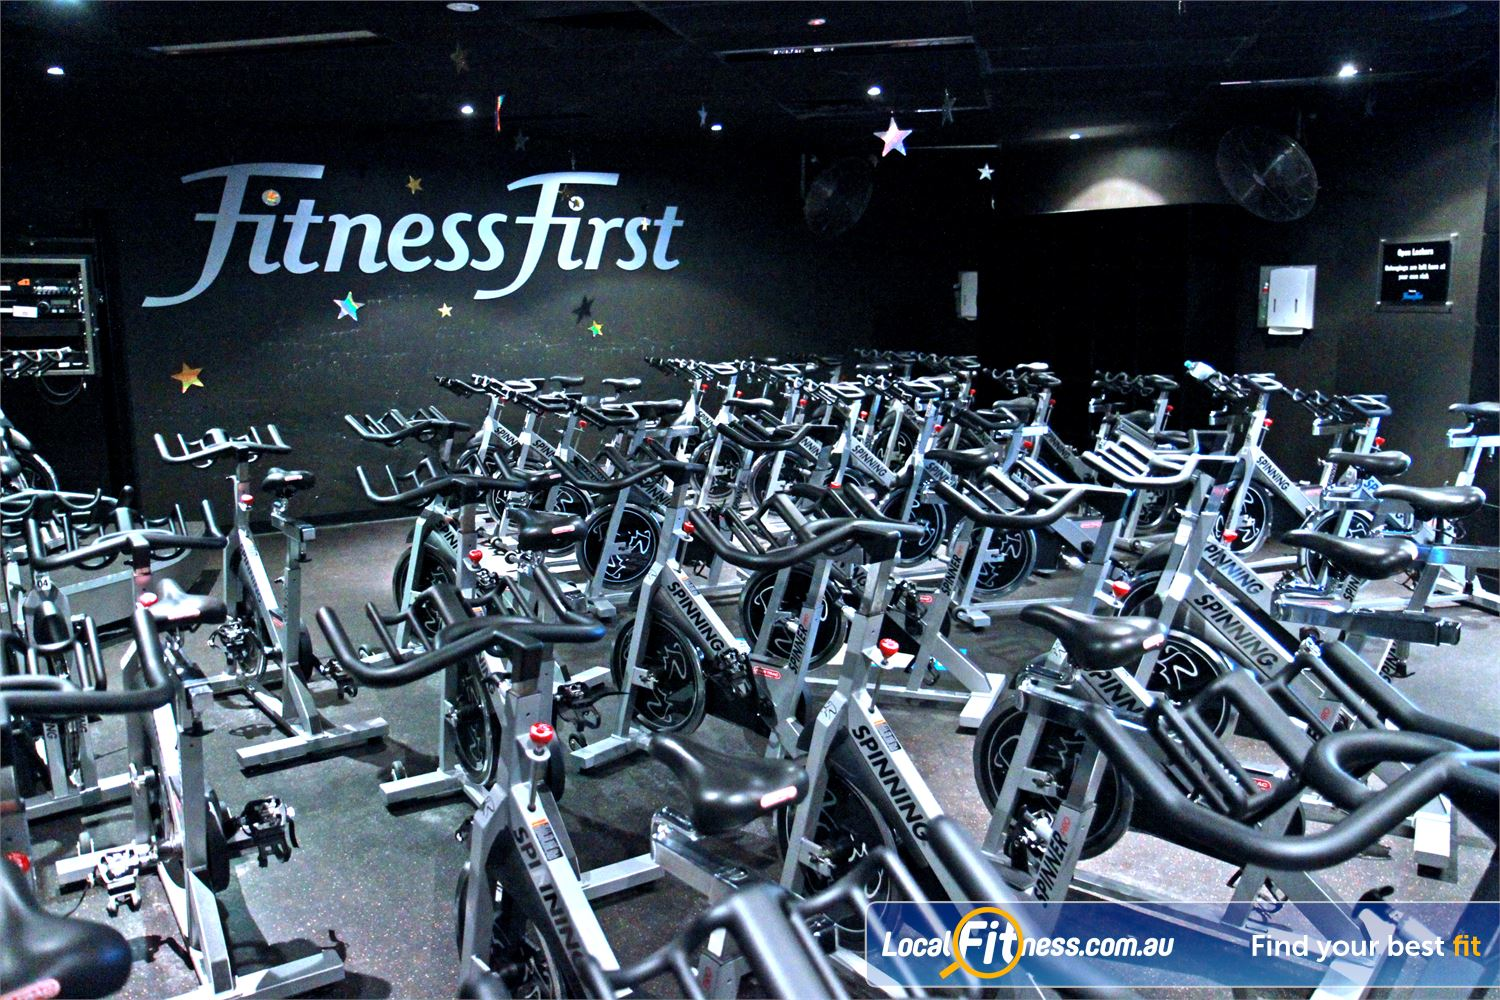 Goodlife Health Clubs Near Osborne Park Goodlife Innaloo includes our signature Cosmic spin cycle classes.